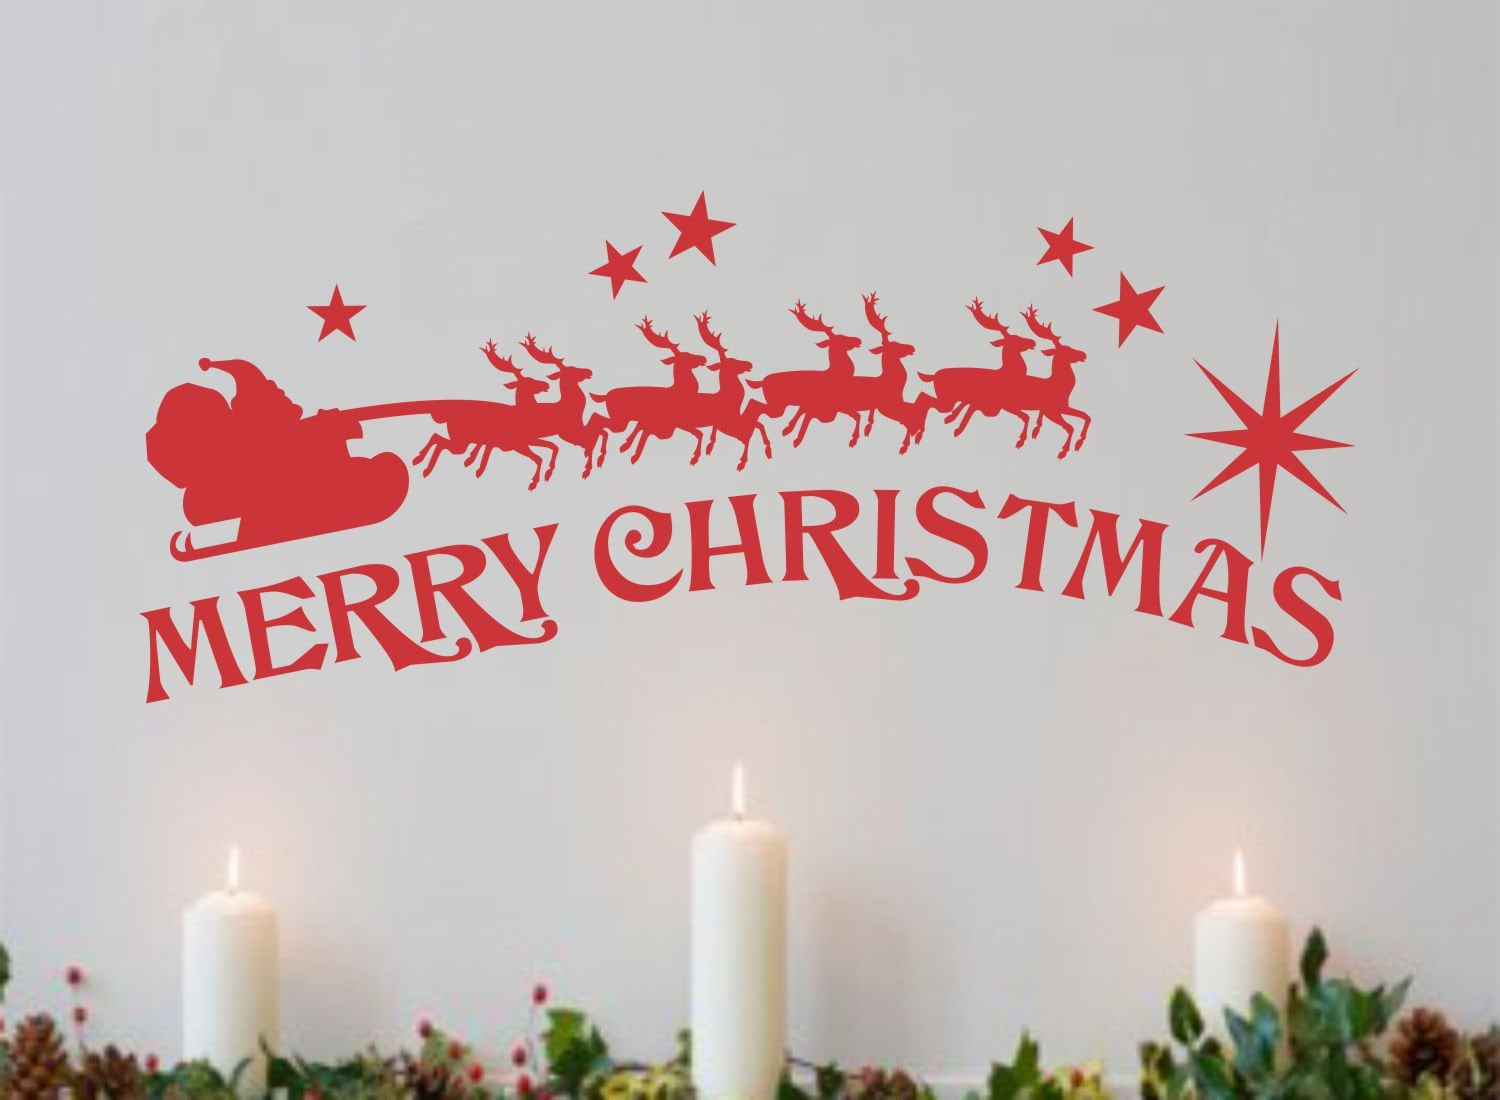 Merry Christmas Quote Wall Art Decal: Merry Christmas Santa Sleigh Holiday Decal Vinyl Wall